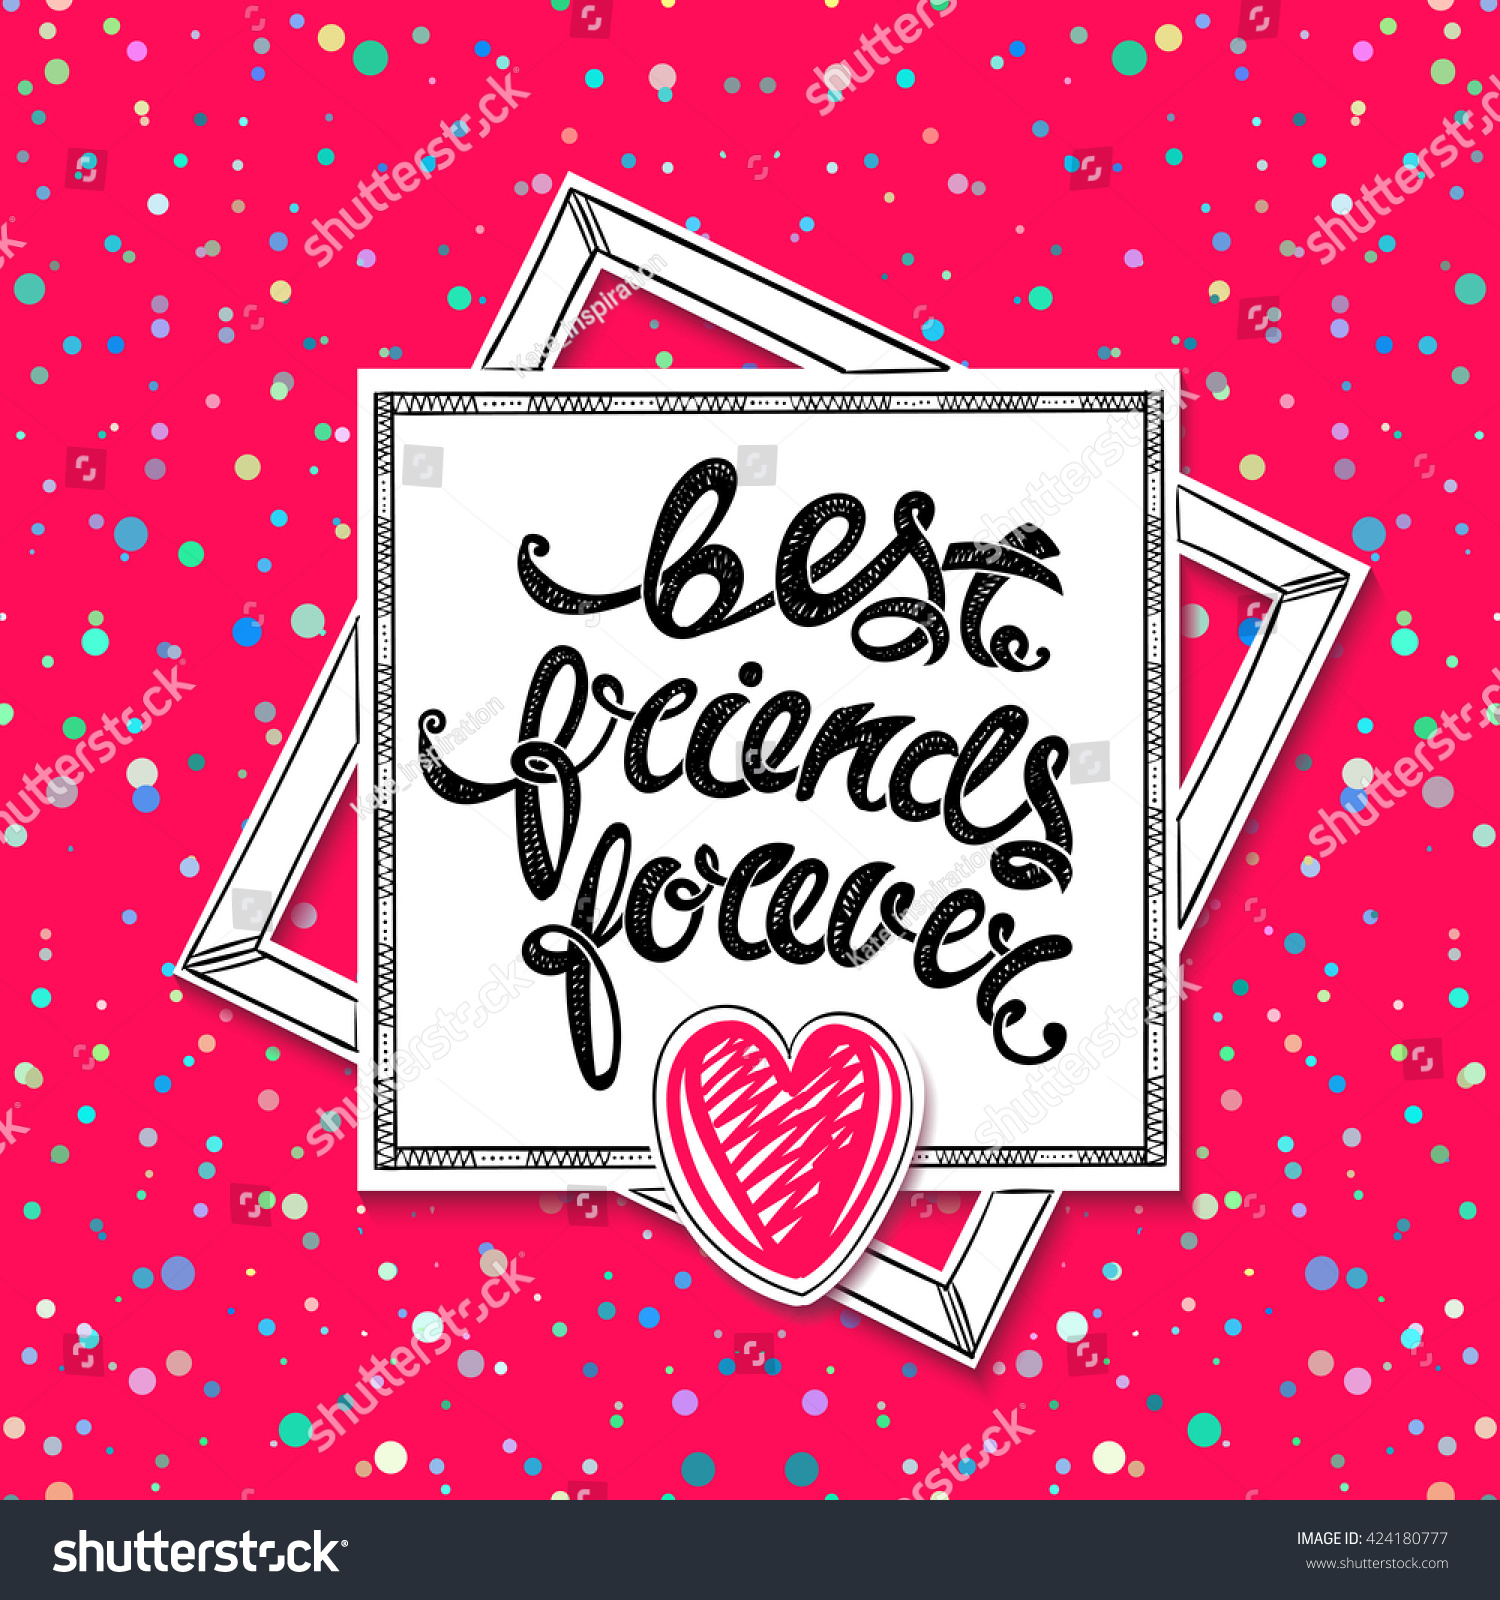 Best Friends Forever Vector Greeting Card Stock Vector